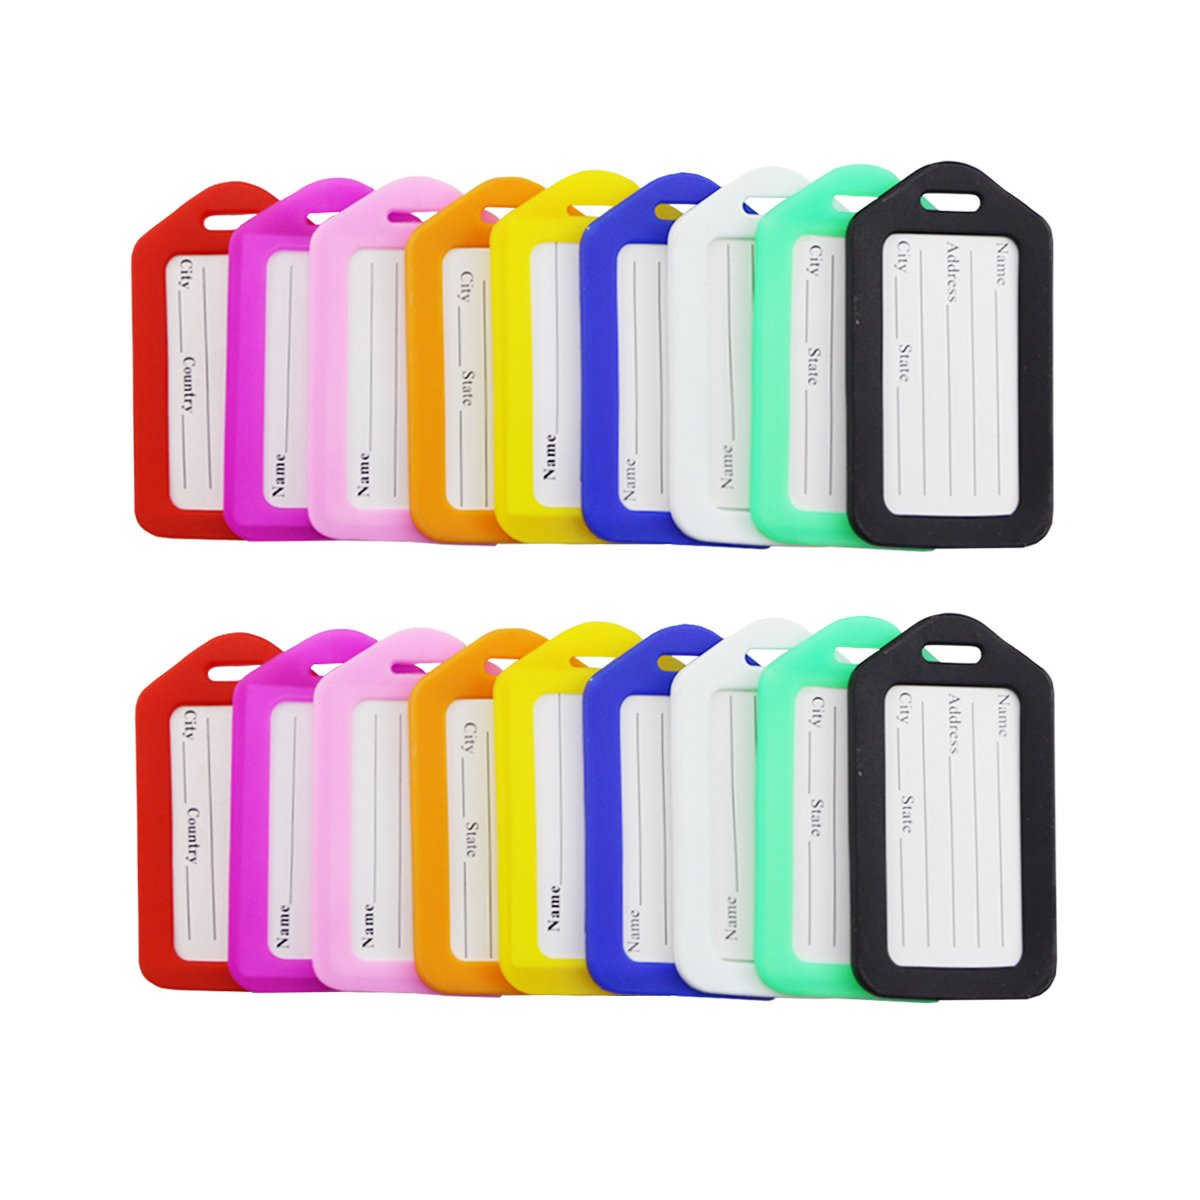 Fireboomoon 18 Pieces Luggage Tags Travel Suitcase Luggage Bag Tags (9 Colors)